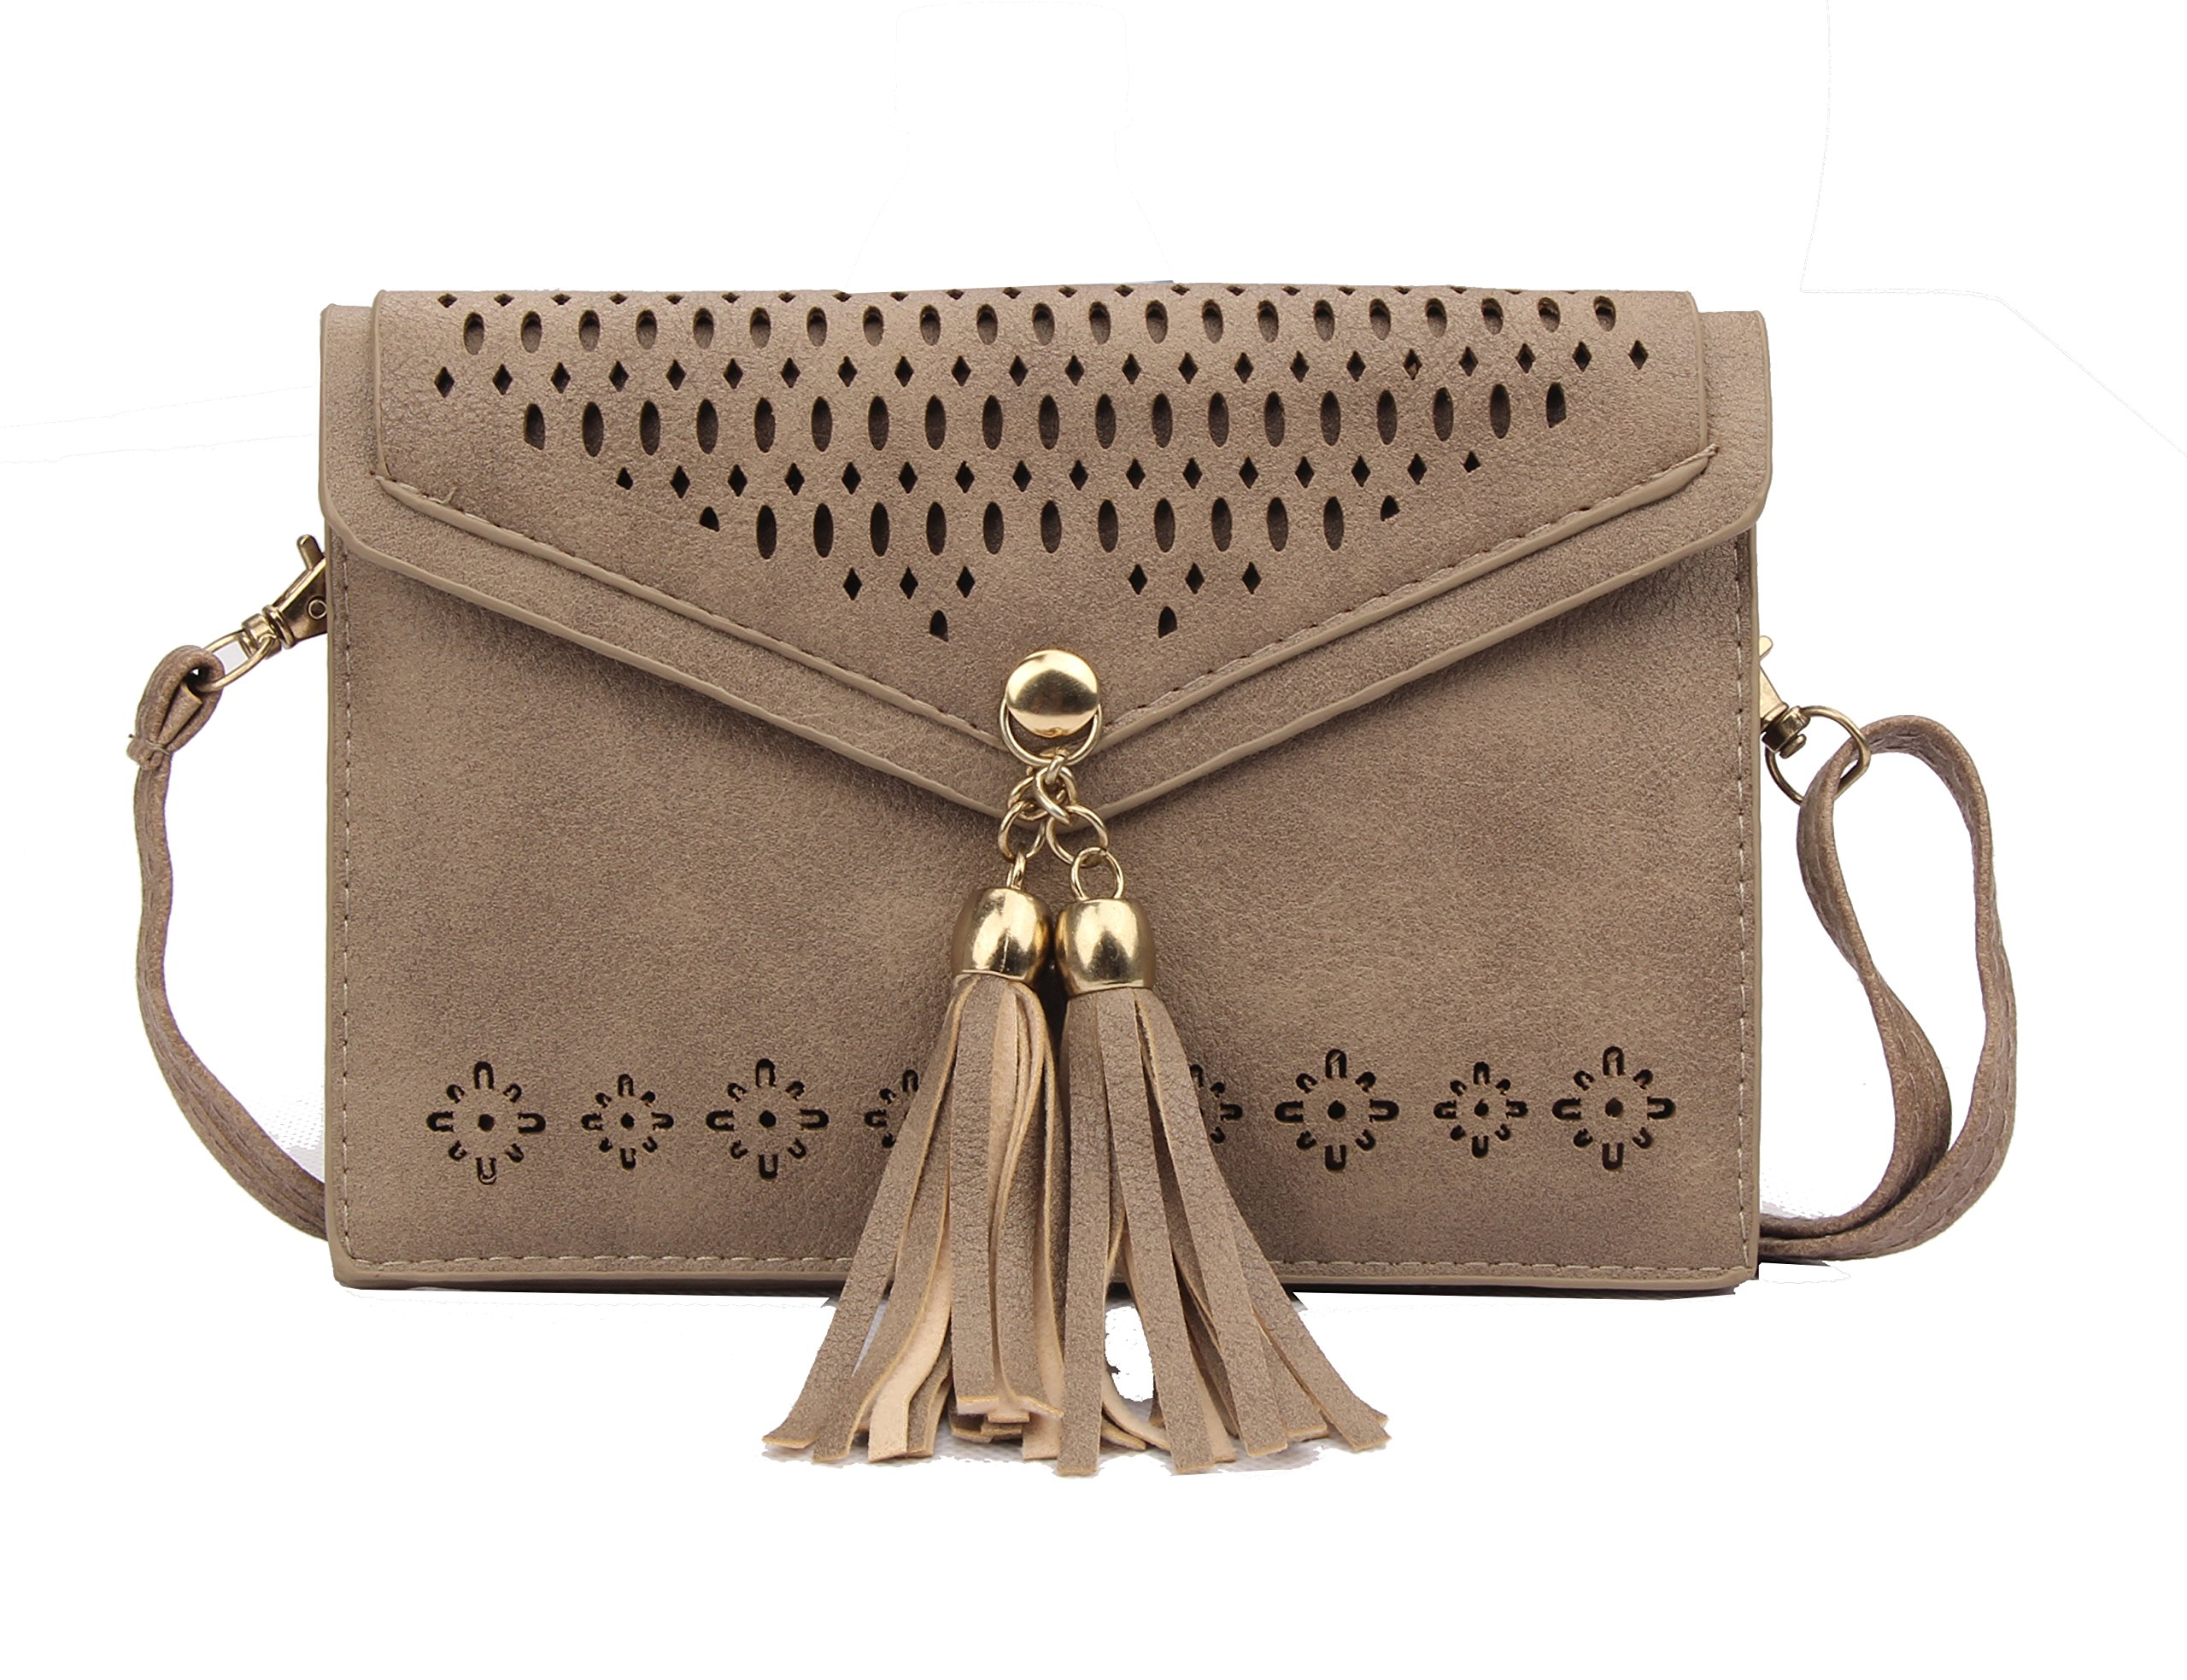 Small Crossbody Bag Tassel Phone Purse for Women Teen Girls with Double Compartments